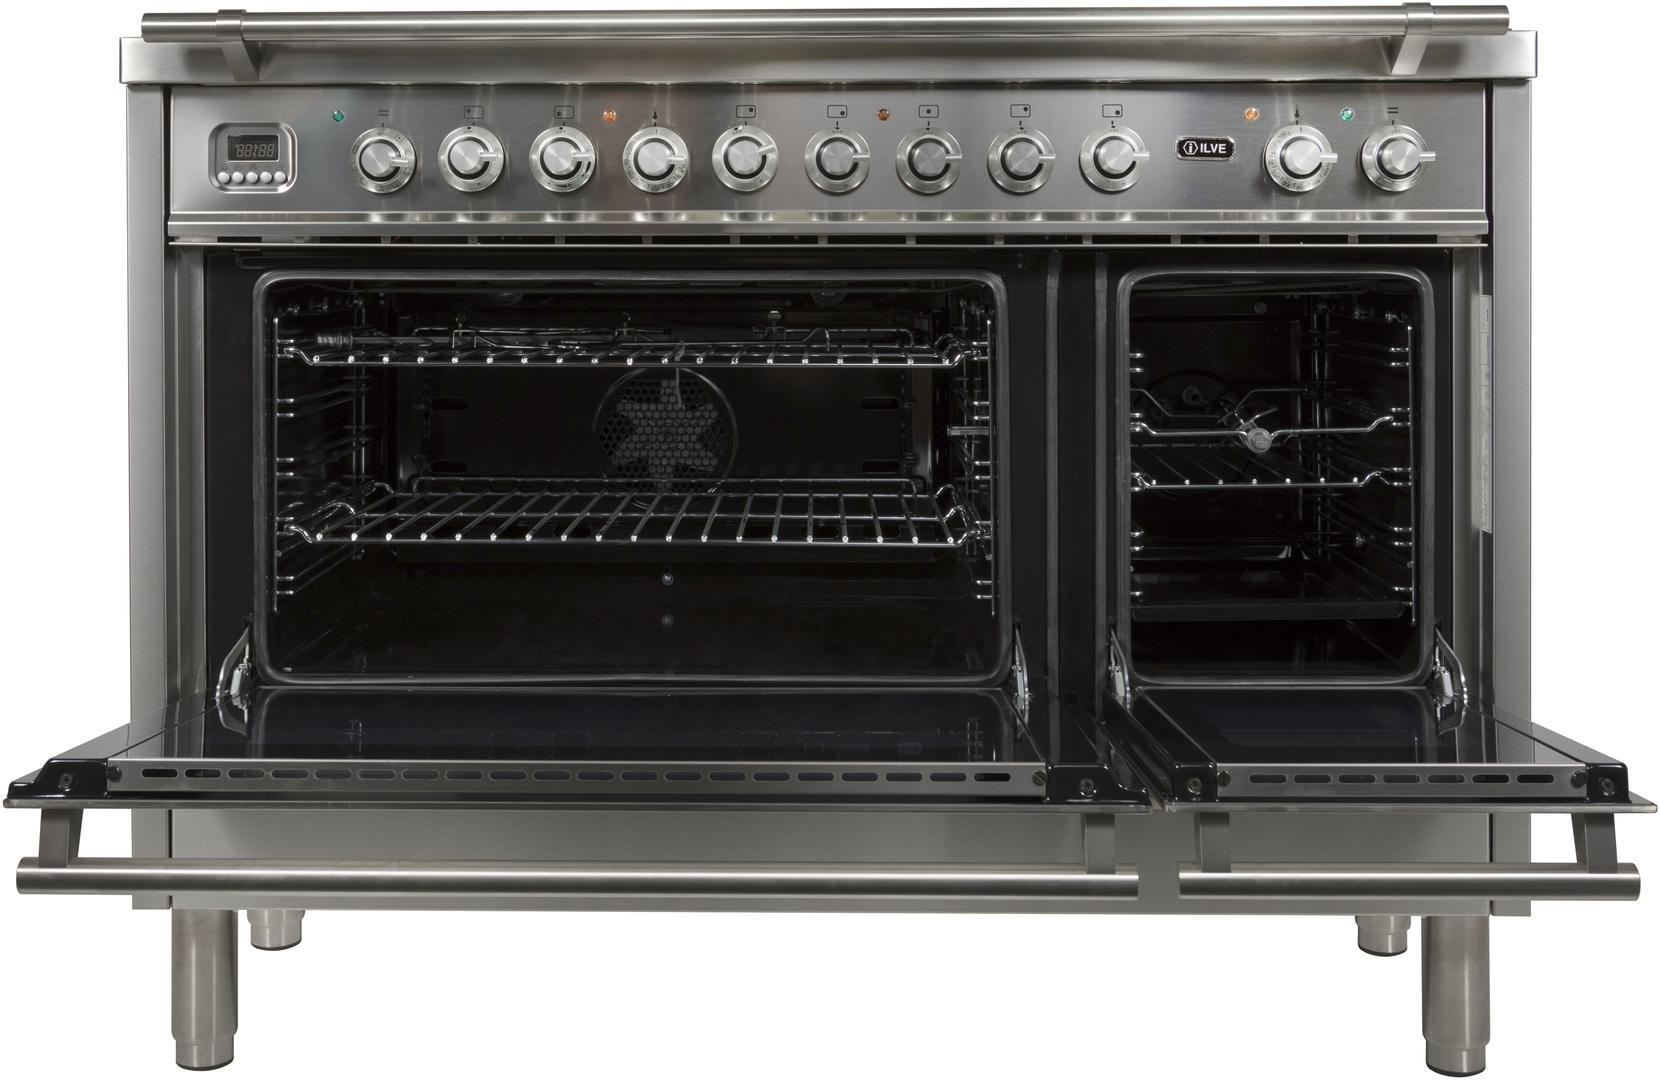 Ilve Professional Plus UPW120FDMPILP Freestanding Dual Fuel Range Stainless Steel, UPW120FDMPILP Oven Doors Opened